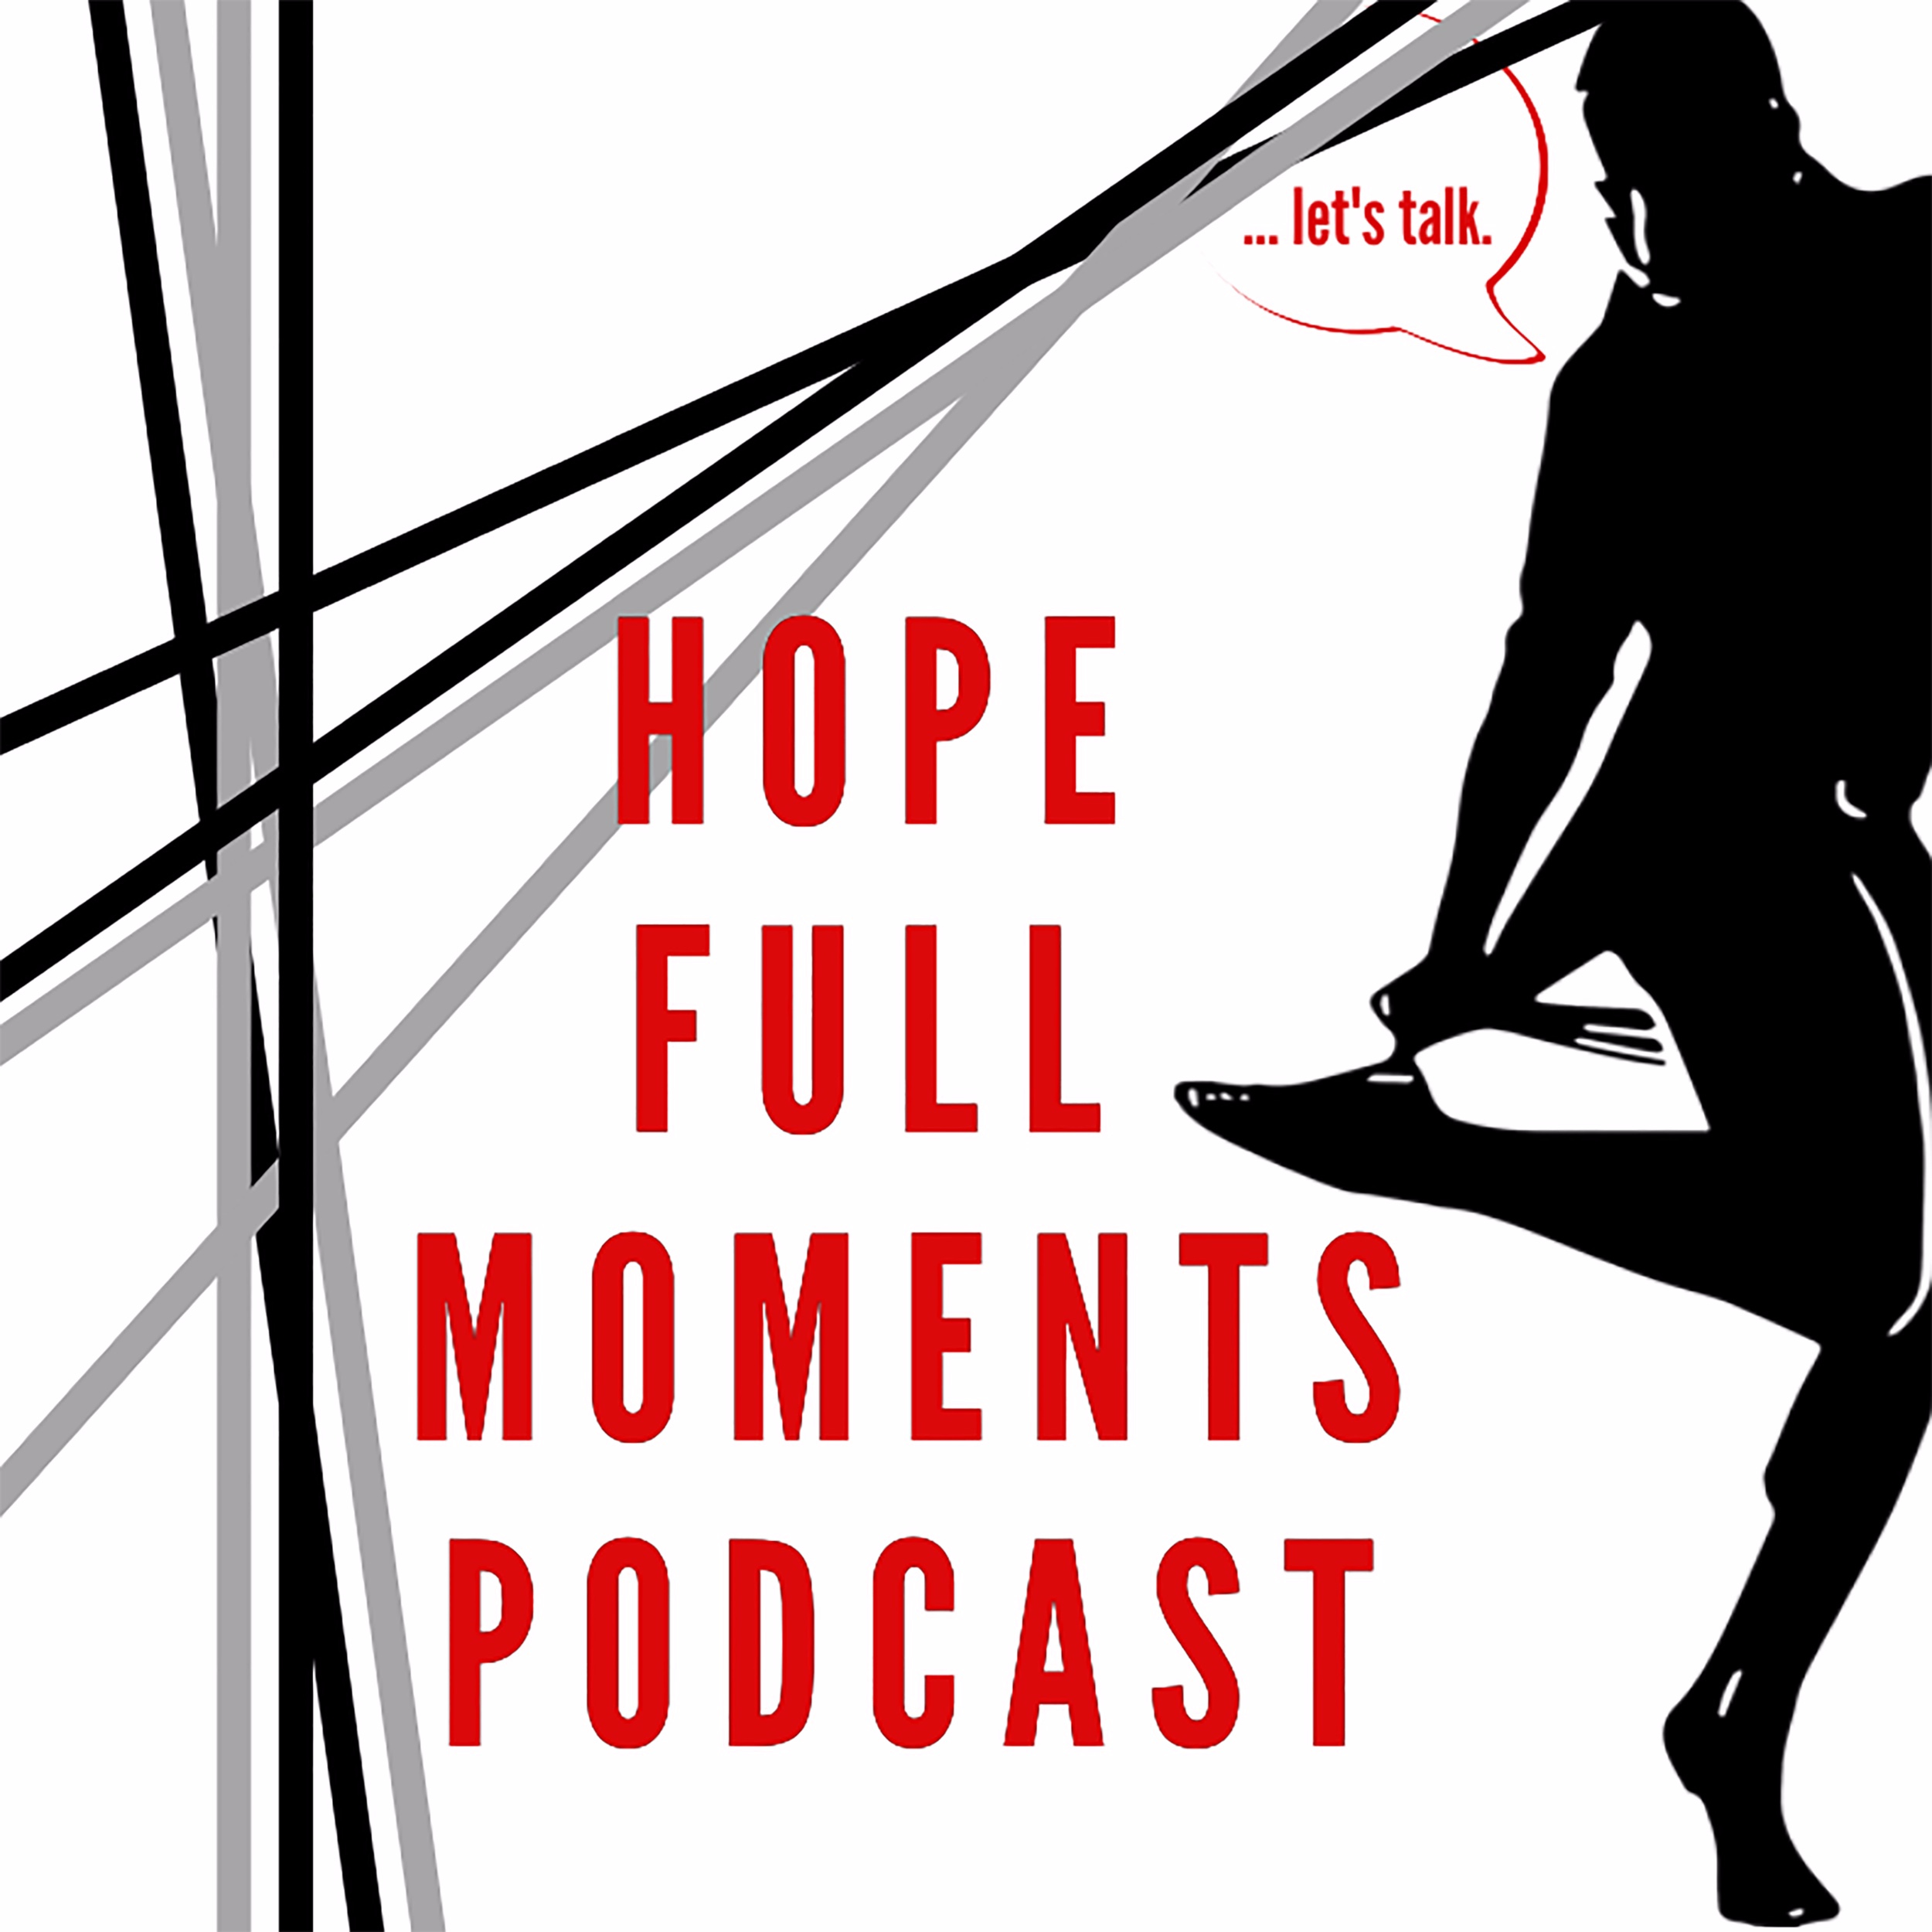 Hope Full Moments - … let's talk.Hope Full Moments Podcast, is a platform for me to share my experiences, answer your questions, and check my mirror for truth, all while helping me to grow in my own strength, which I pray will be benefit to someone, somewhere. You see, I need to be truly true to who I am, can, and am called to be, and I want every moment we spend together to be full of HOPE.